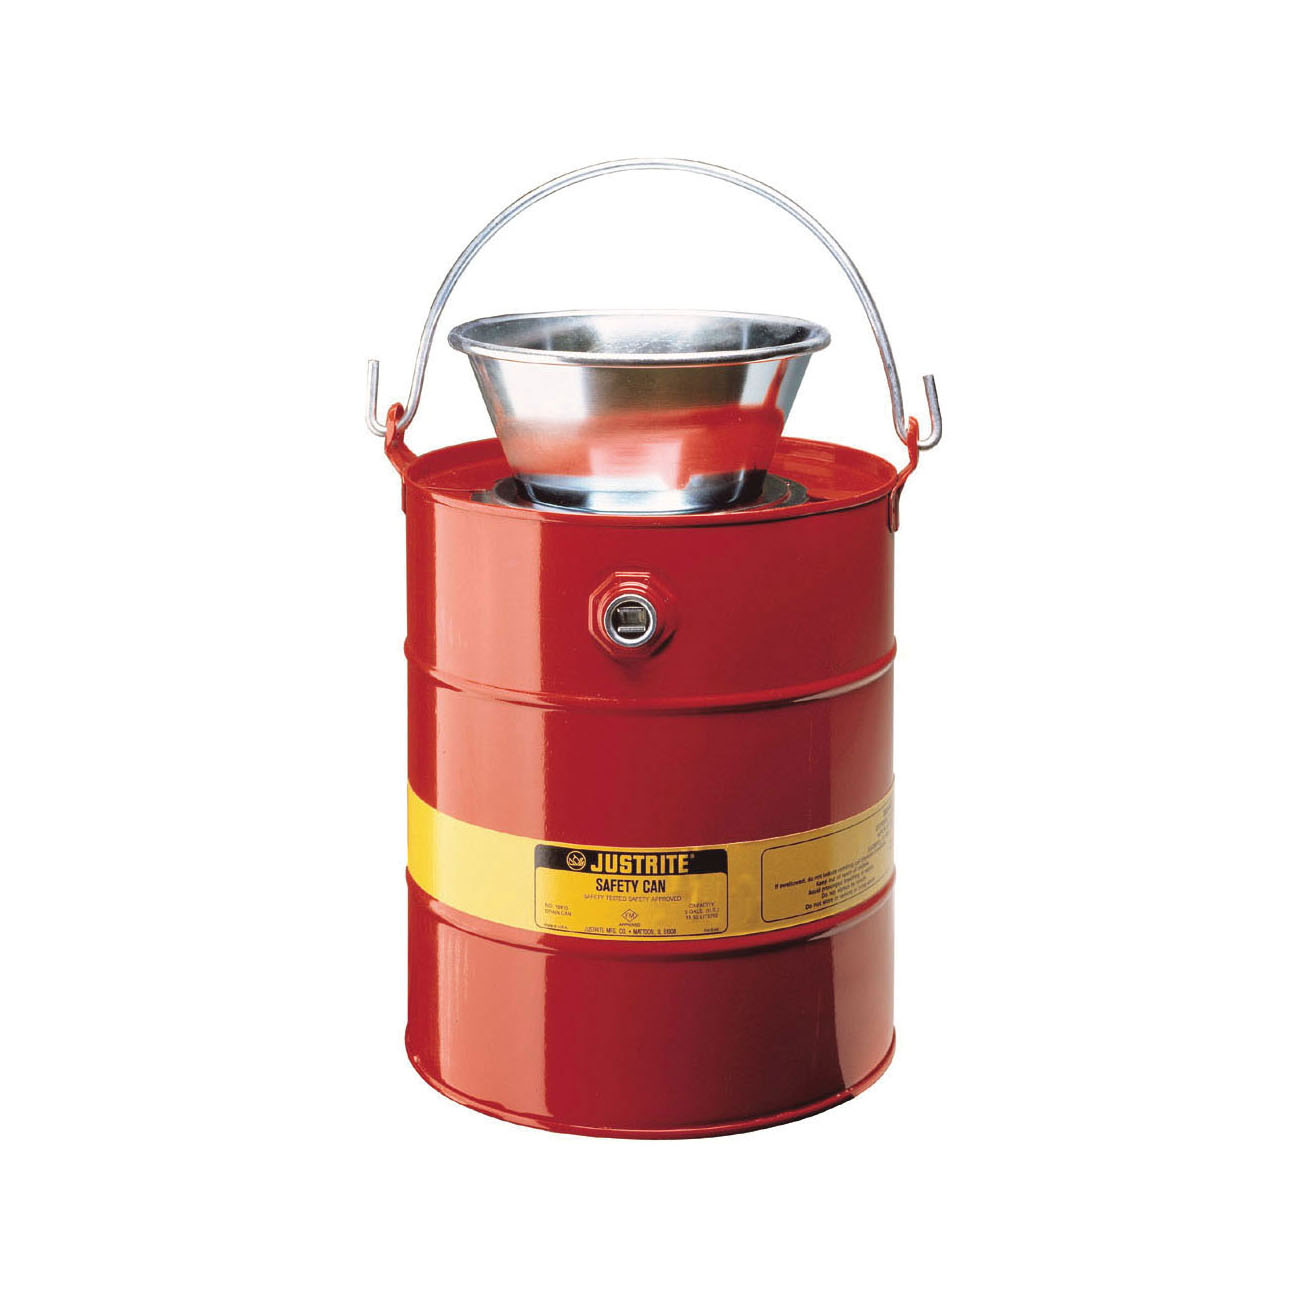 Justrite® 10905 Drain Can With Plated Steel Funnel, 5 gal Capacity, 11-5/8 in Dia, 16-3/4 in H, Steel, Red, FM Approved